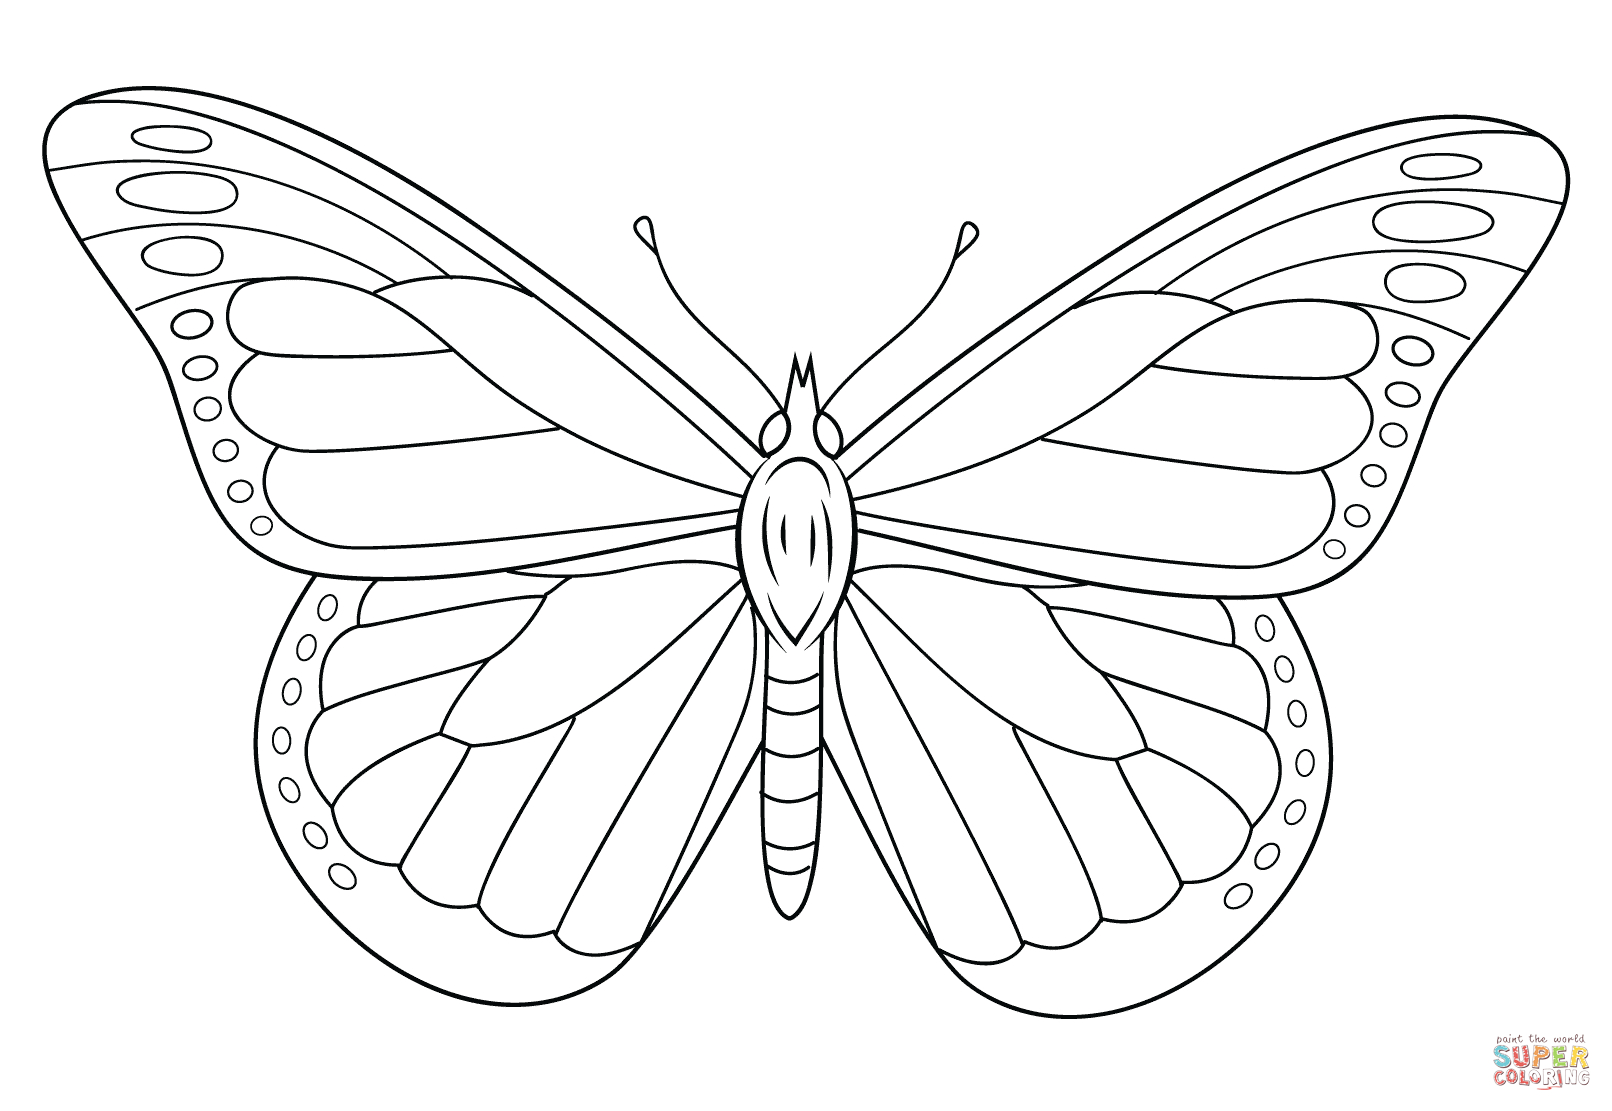 Monarch Butterfly Coloring Page | Free Printable Coloring Pages - Butterfly Free Printable Coloring Pages